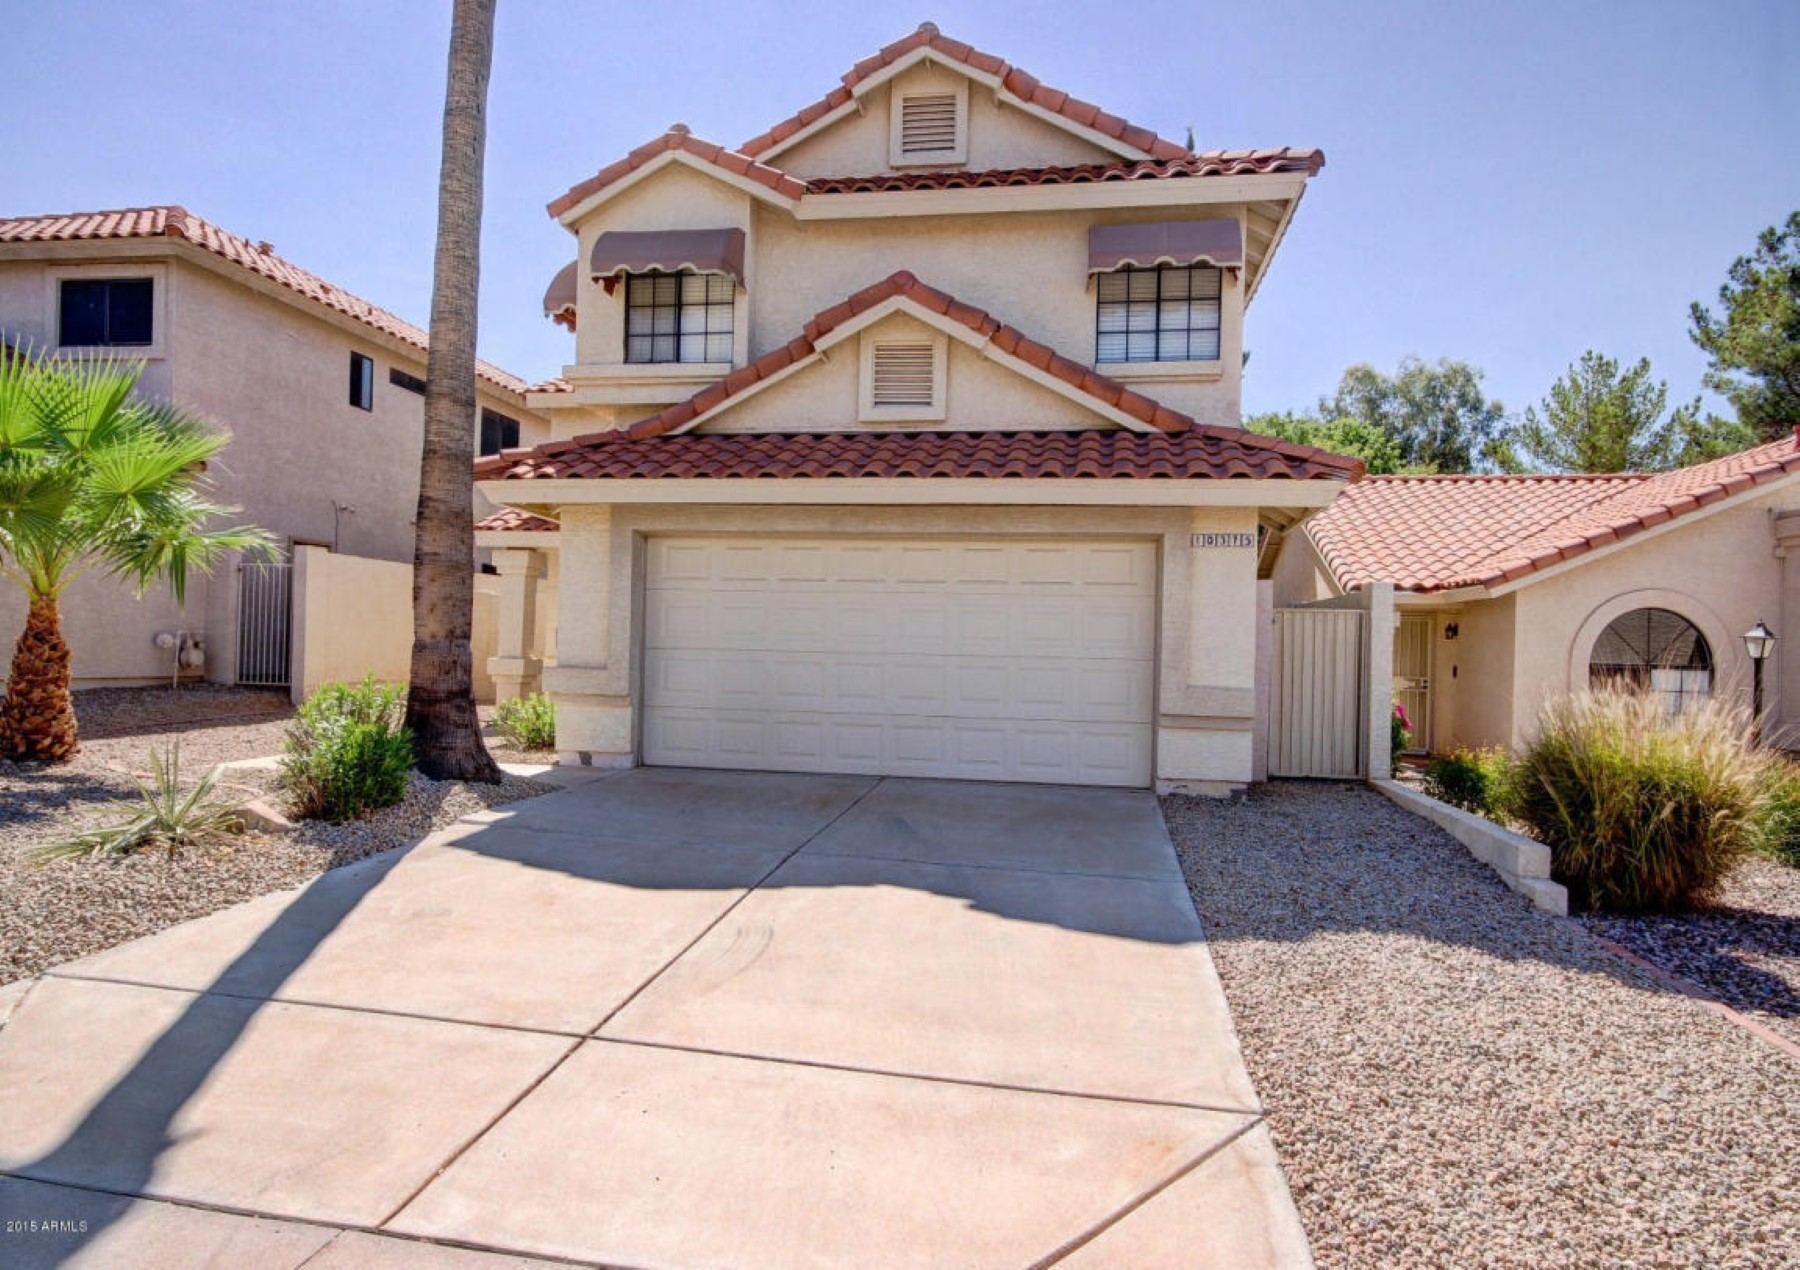 콘도미니엄 용 매매 에 Newly remodeled 4 bedroom 2.5 bathroom two story home. 10375 E Sharon Drive Scottsdale, 아리조나, 85260 미국